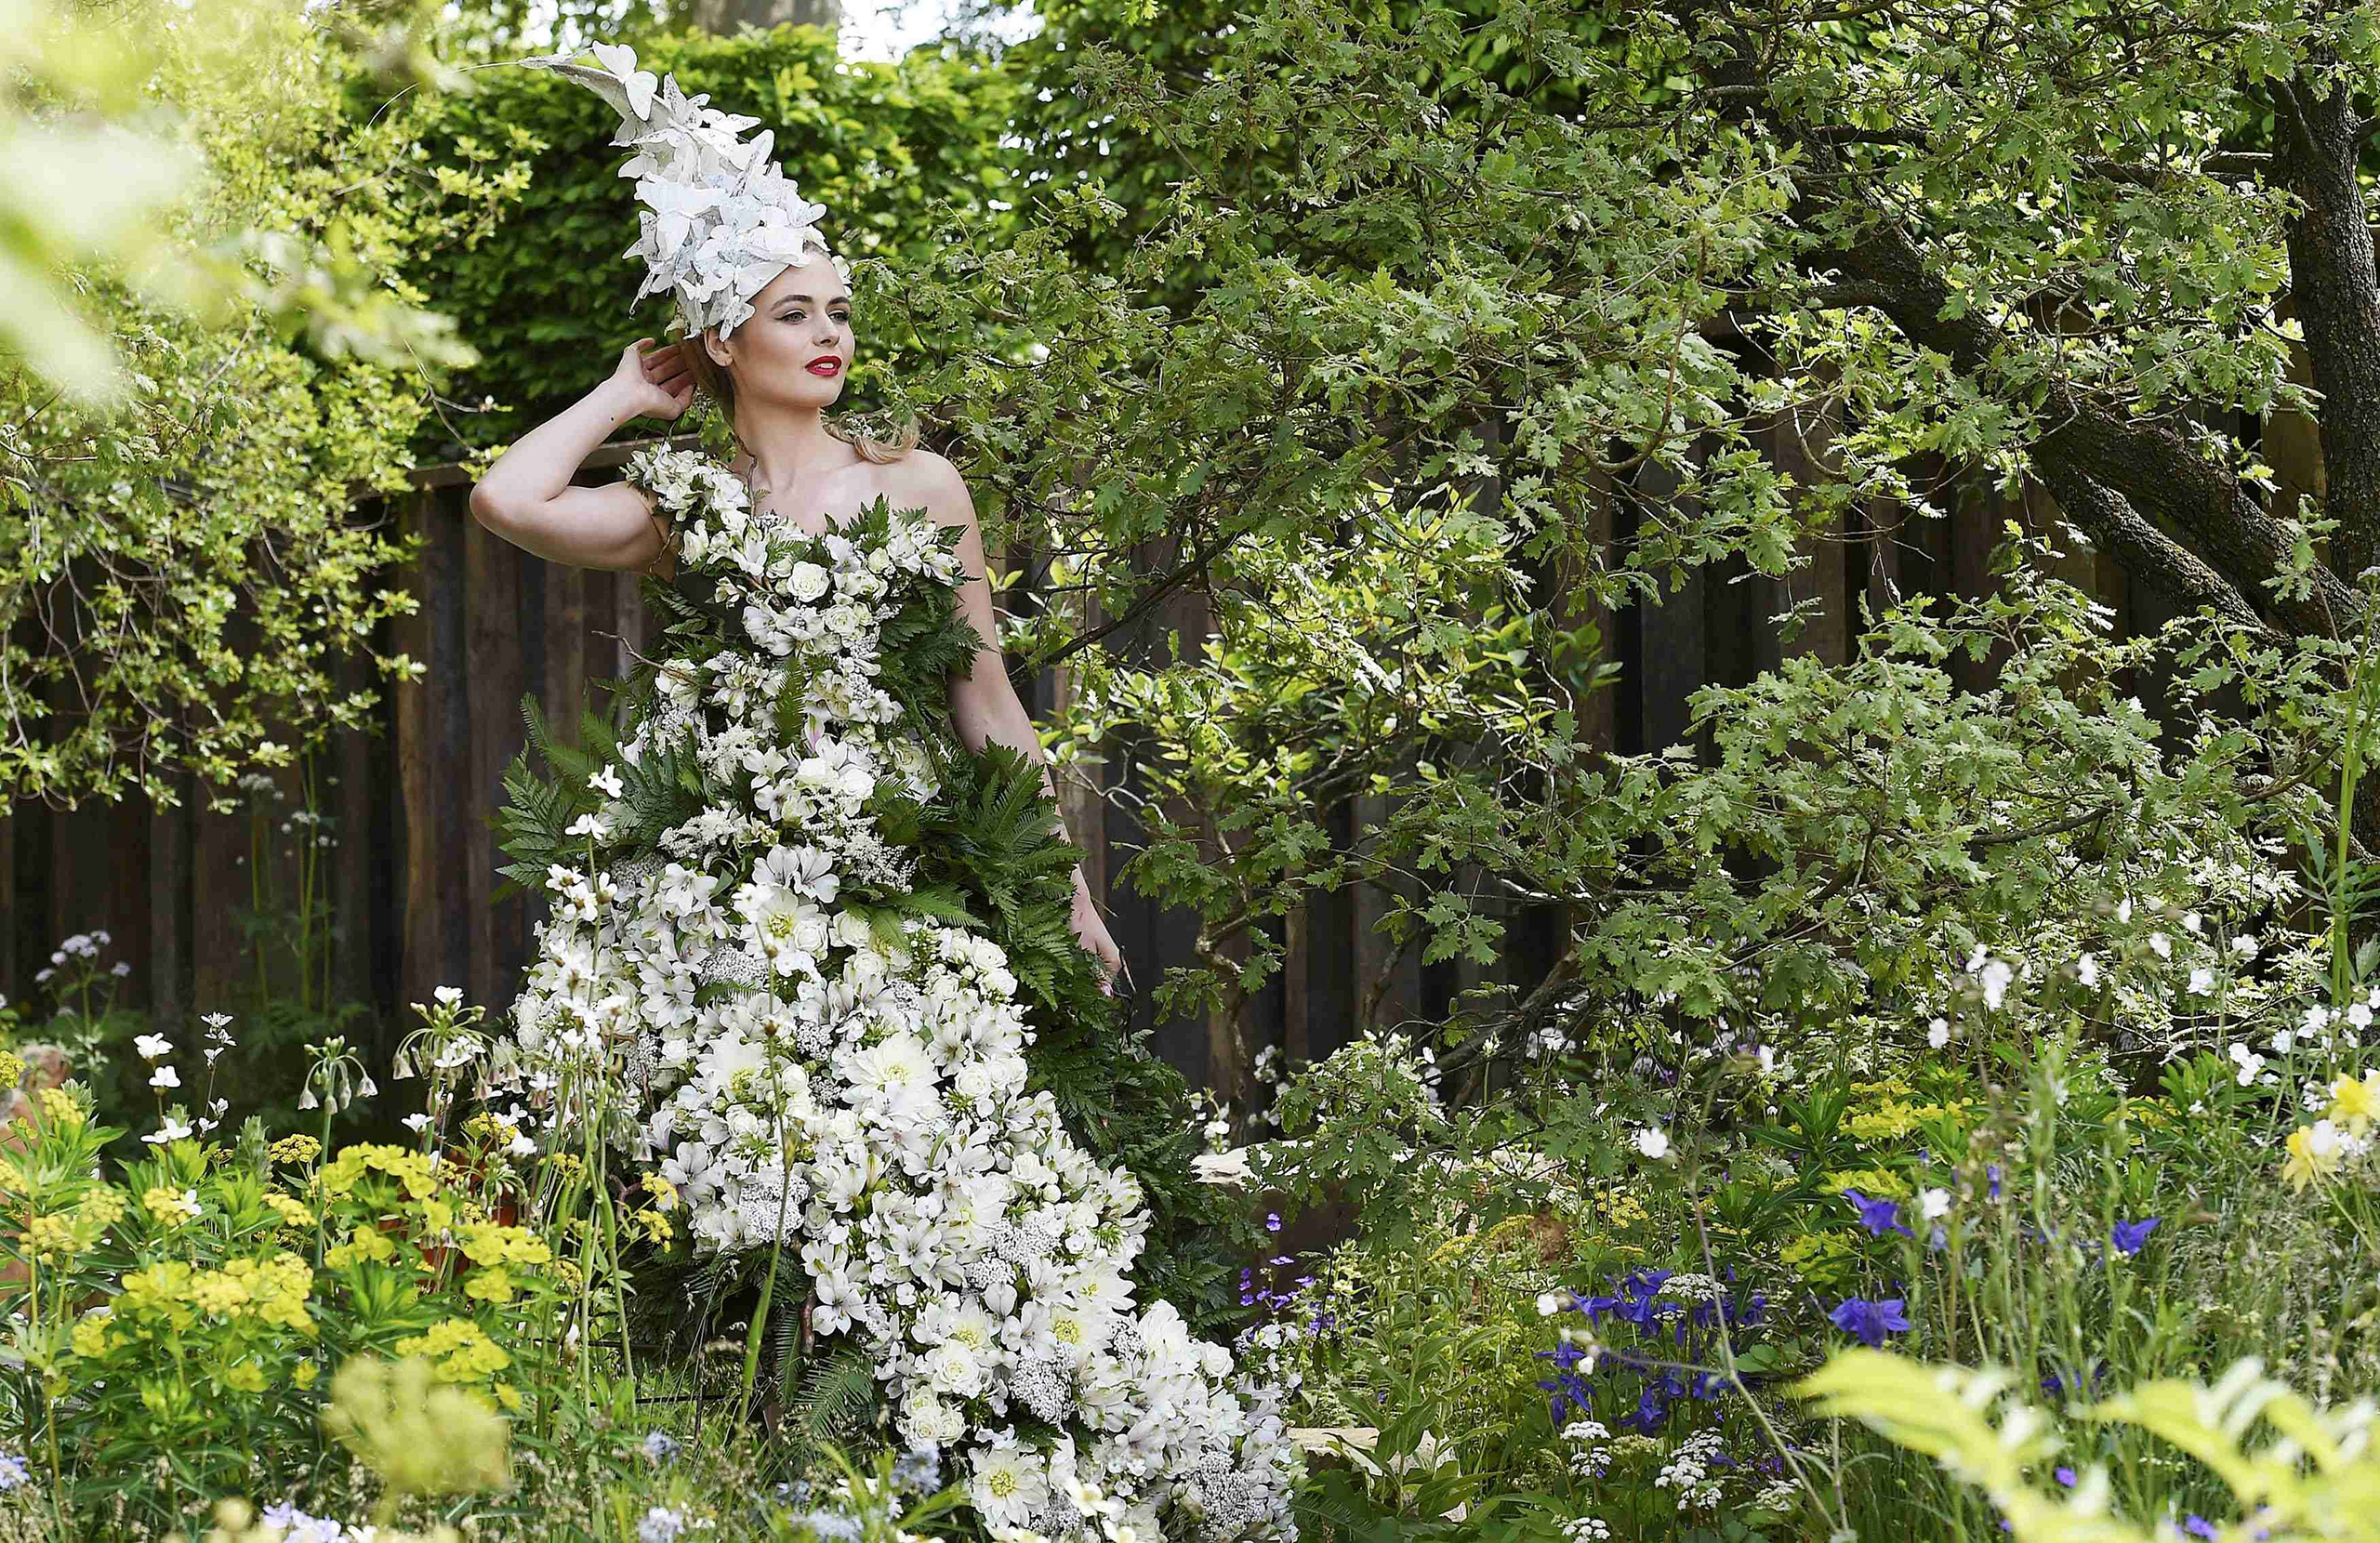 A model poses in a floral dress at the Chelsea Flower Show in London on May 23, 2016.